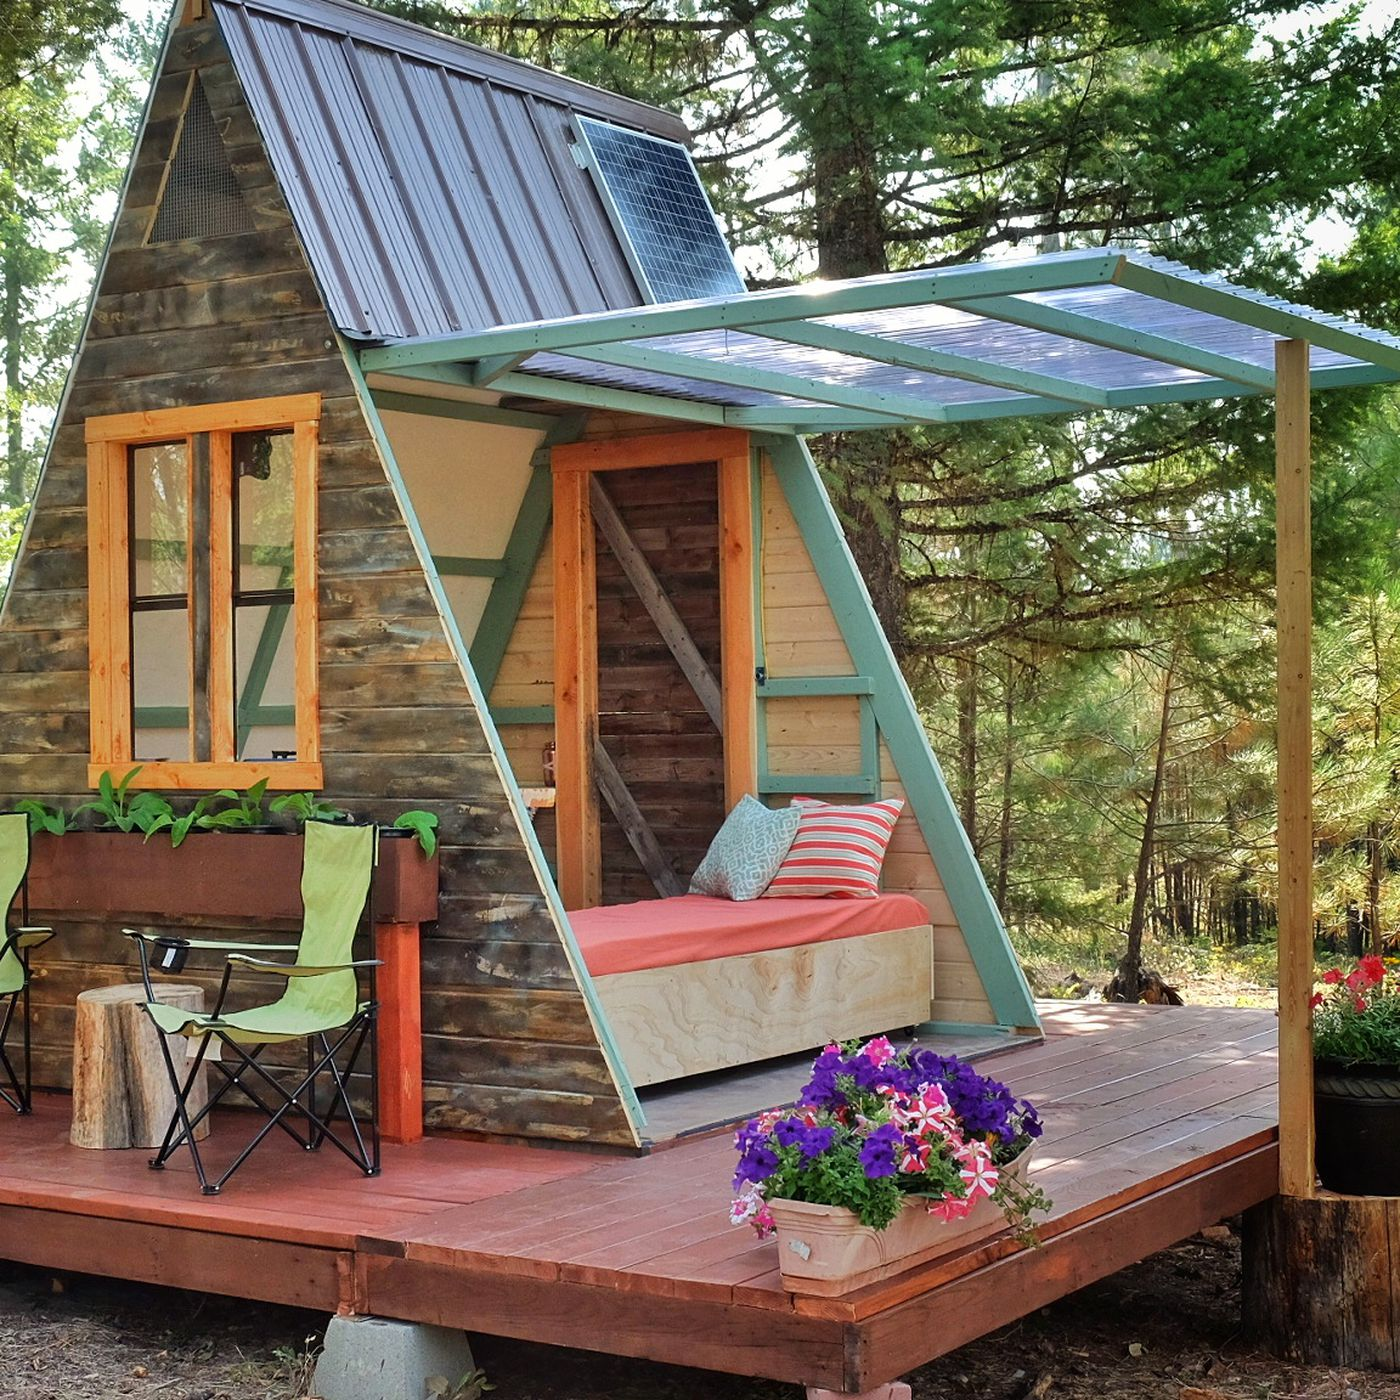 Tiny A-frame cabin costs just $700 to build - Curbed